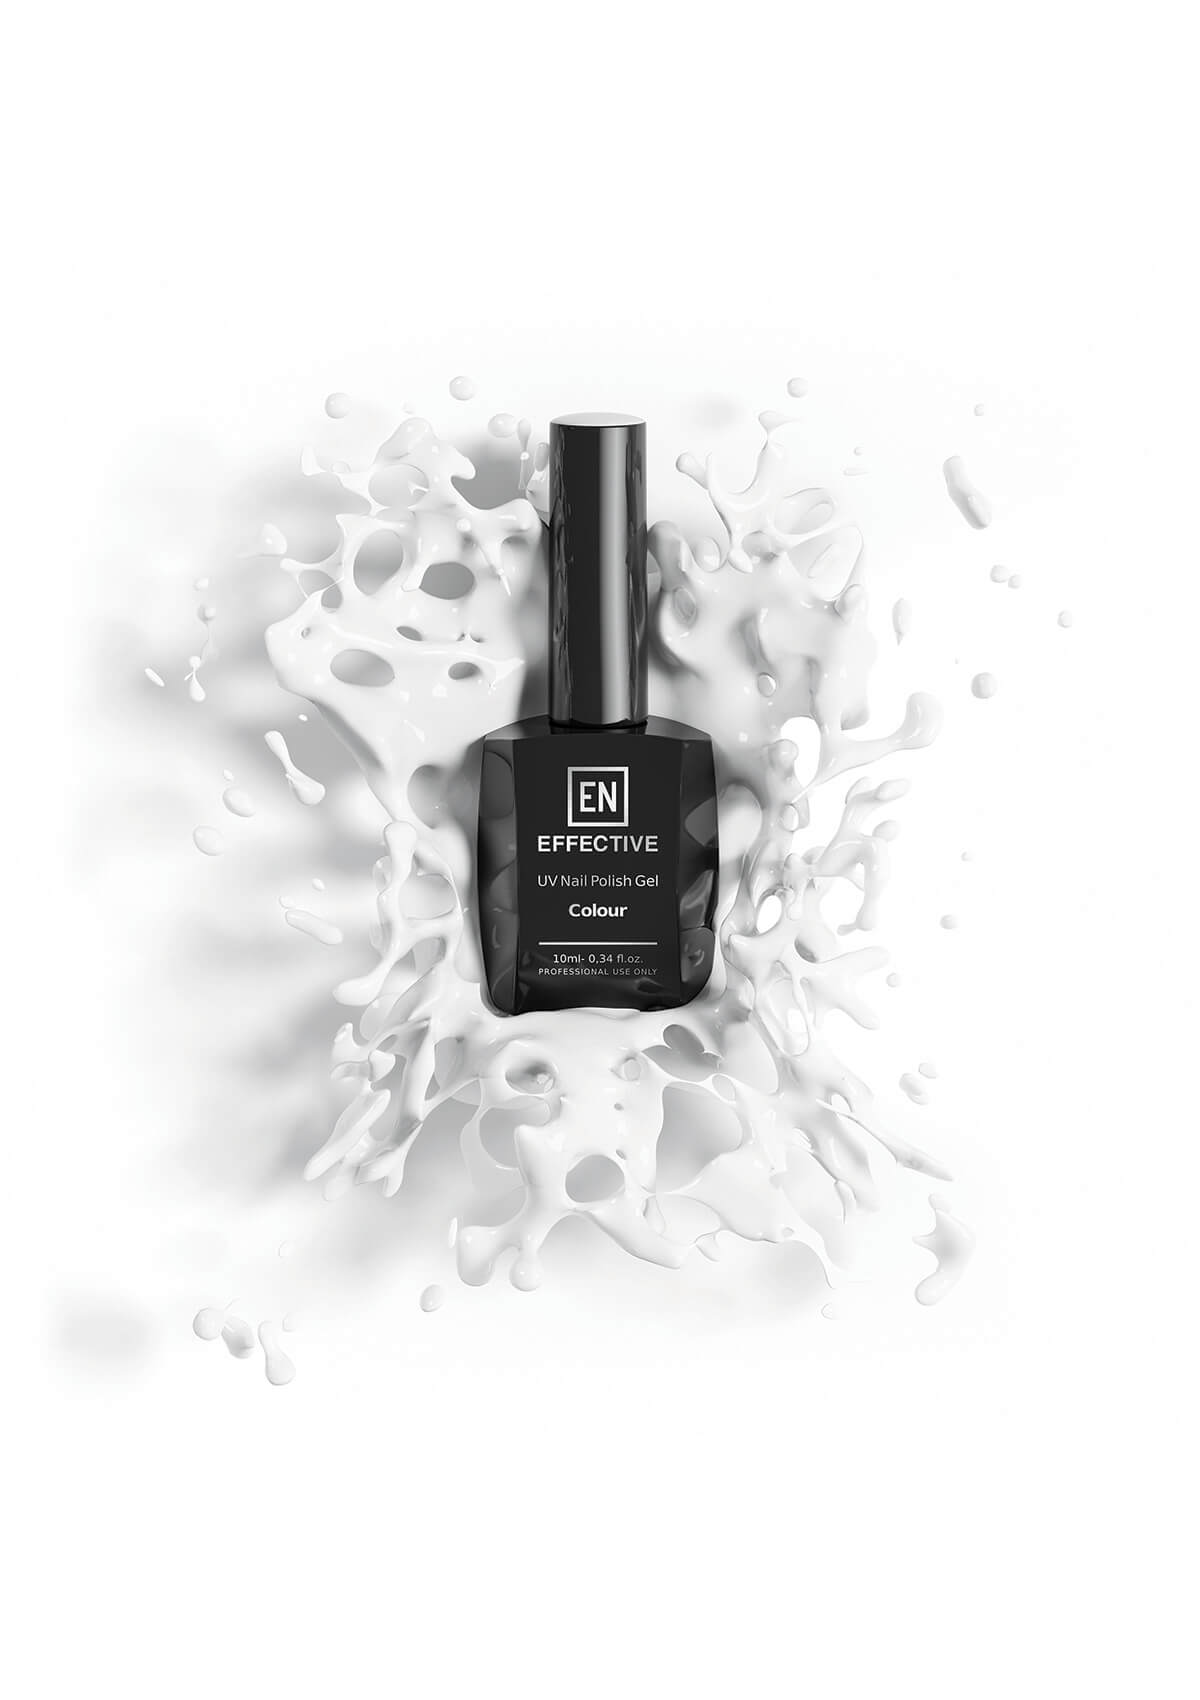 uv nail polish gel 3d product visualization photorealistic high quality picture